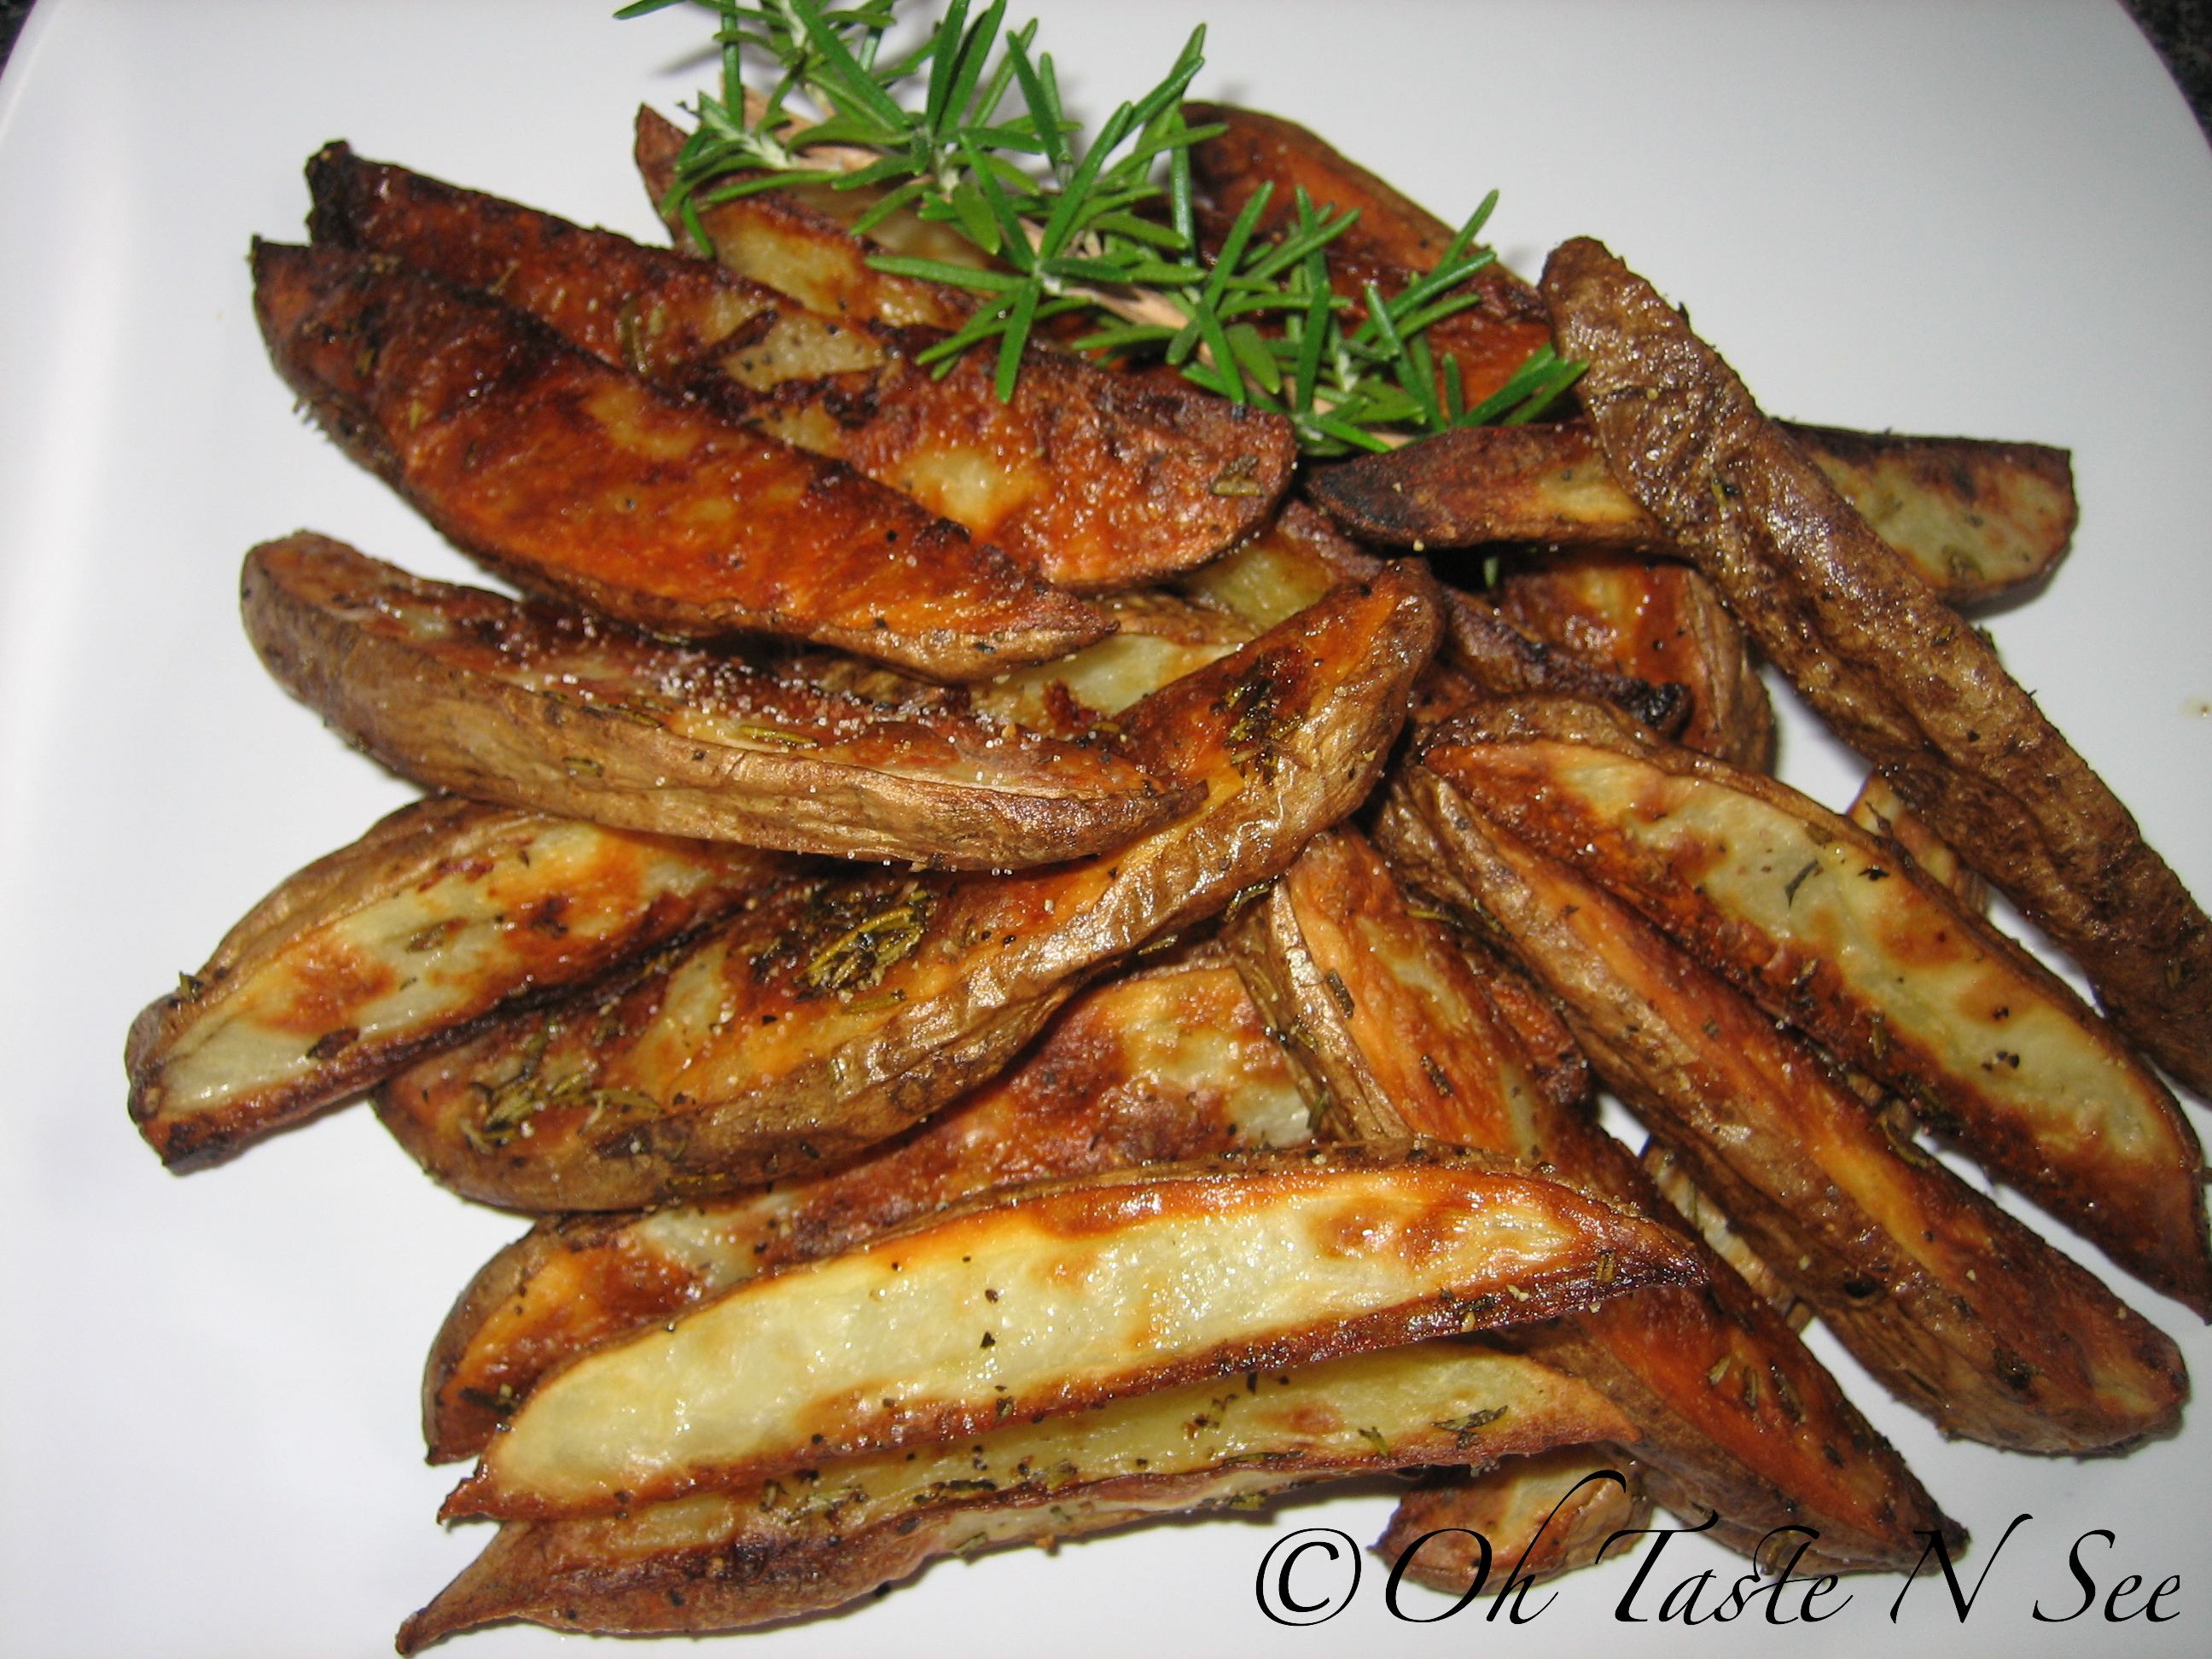 Garlic Rosemary Baked Fries